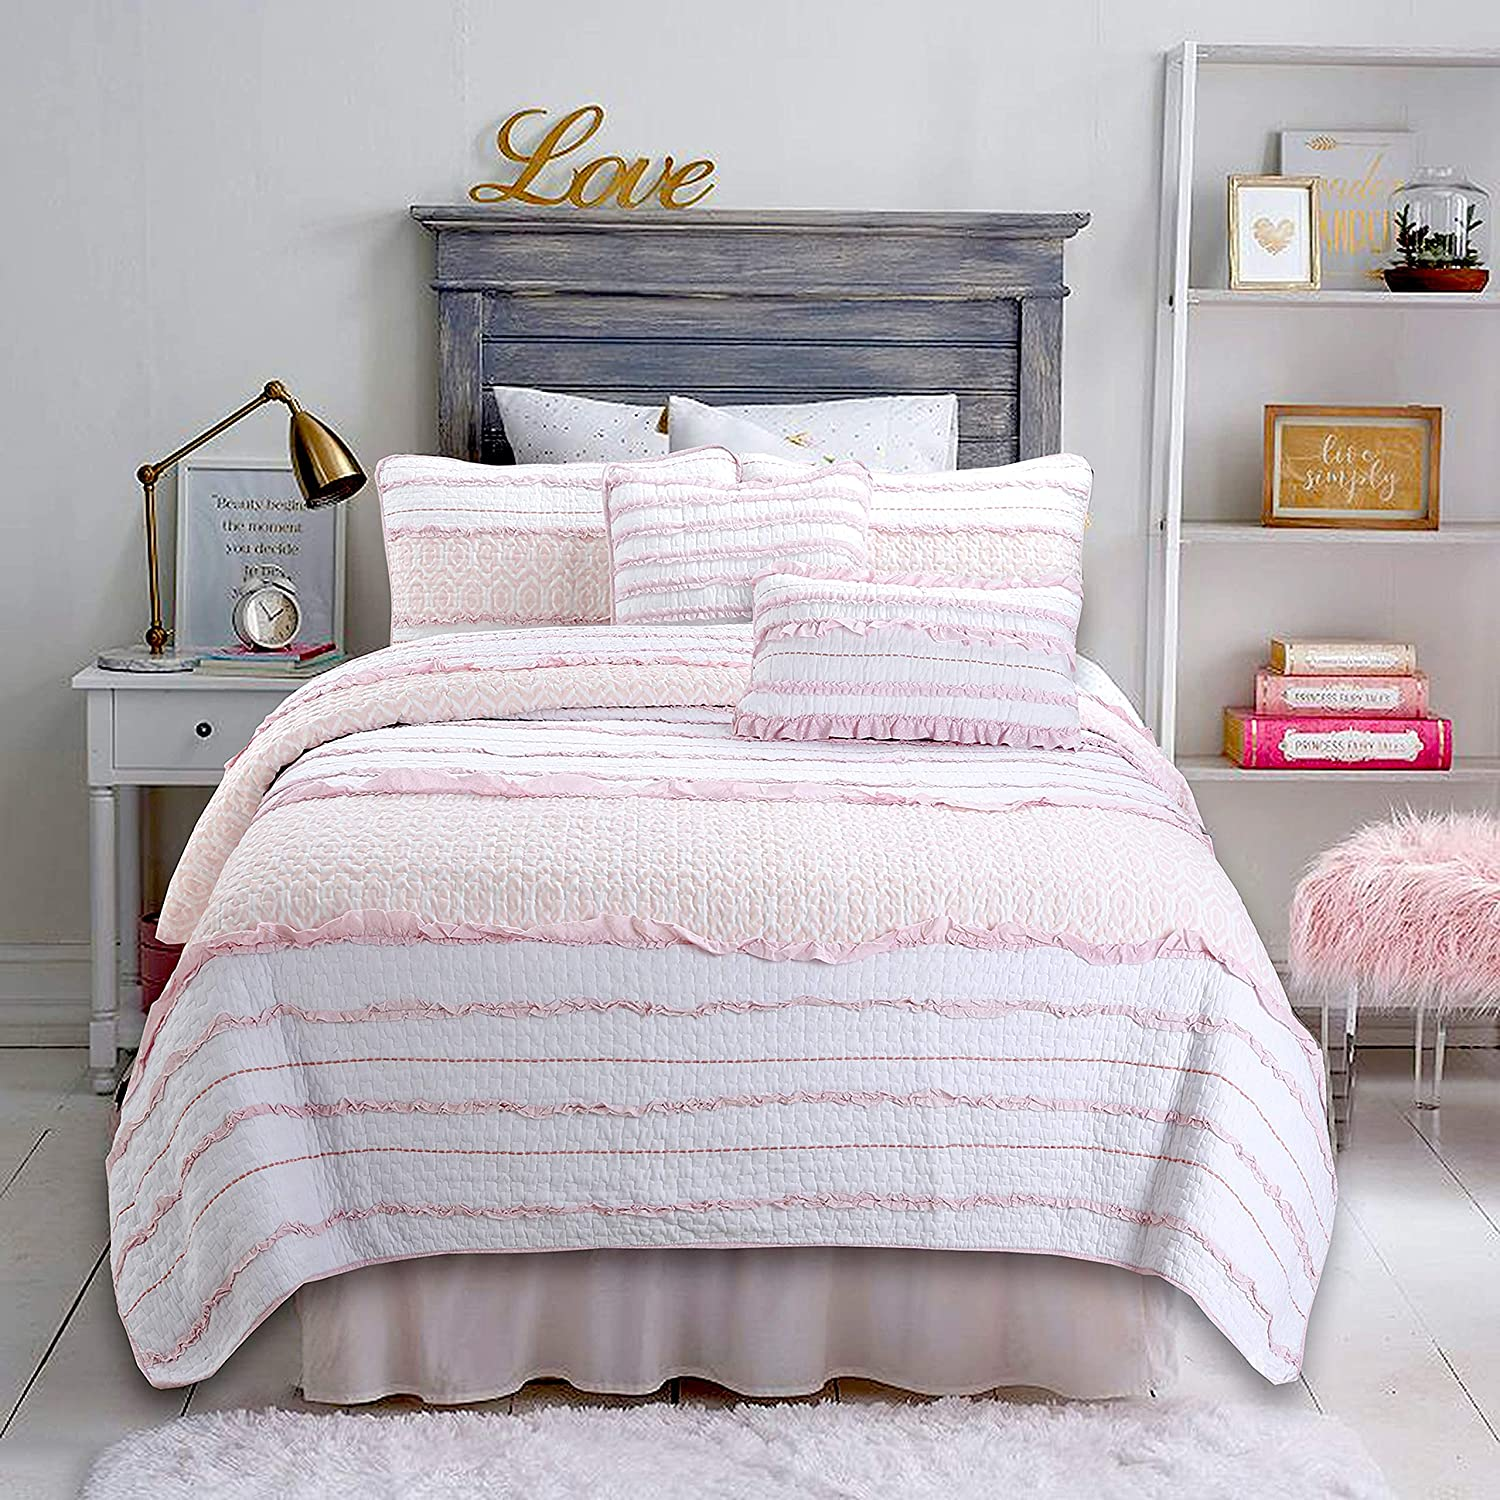 Cozy Line Latest item Home Fashions Special price for a limited time Pink 100% Cotton Reversi Princess Ruffle